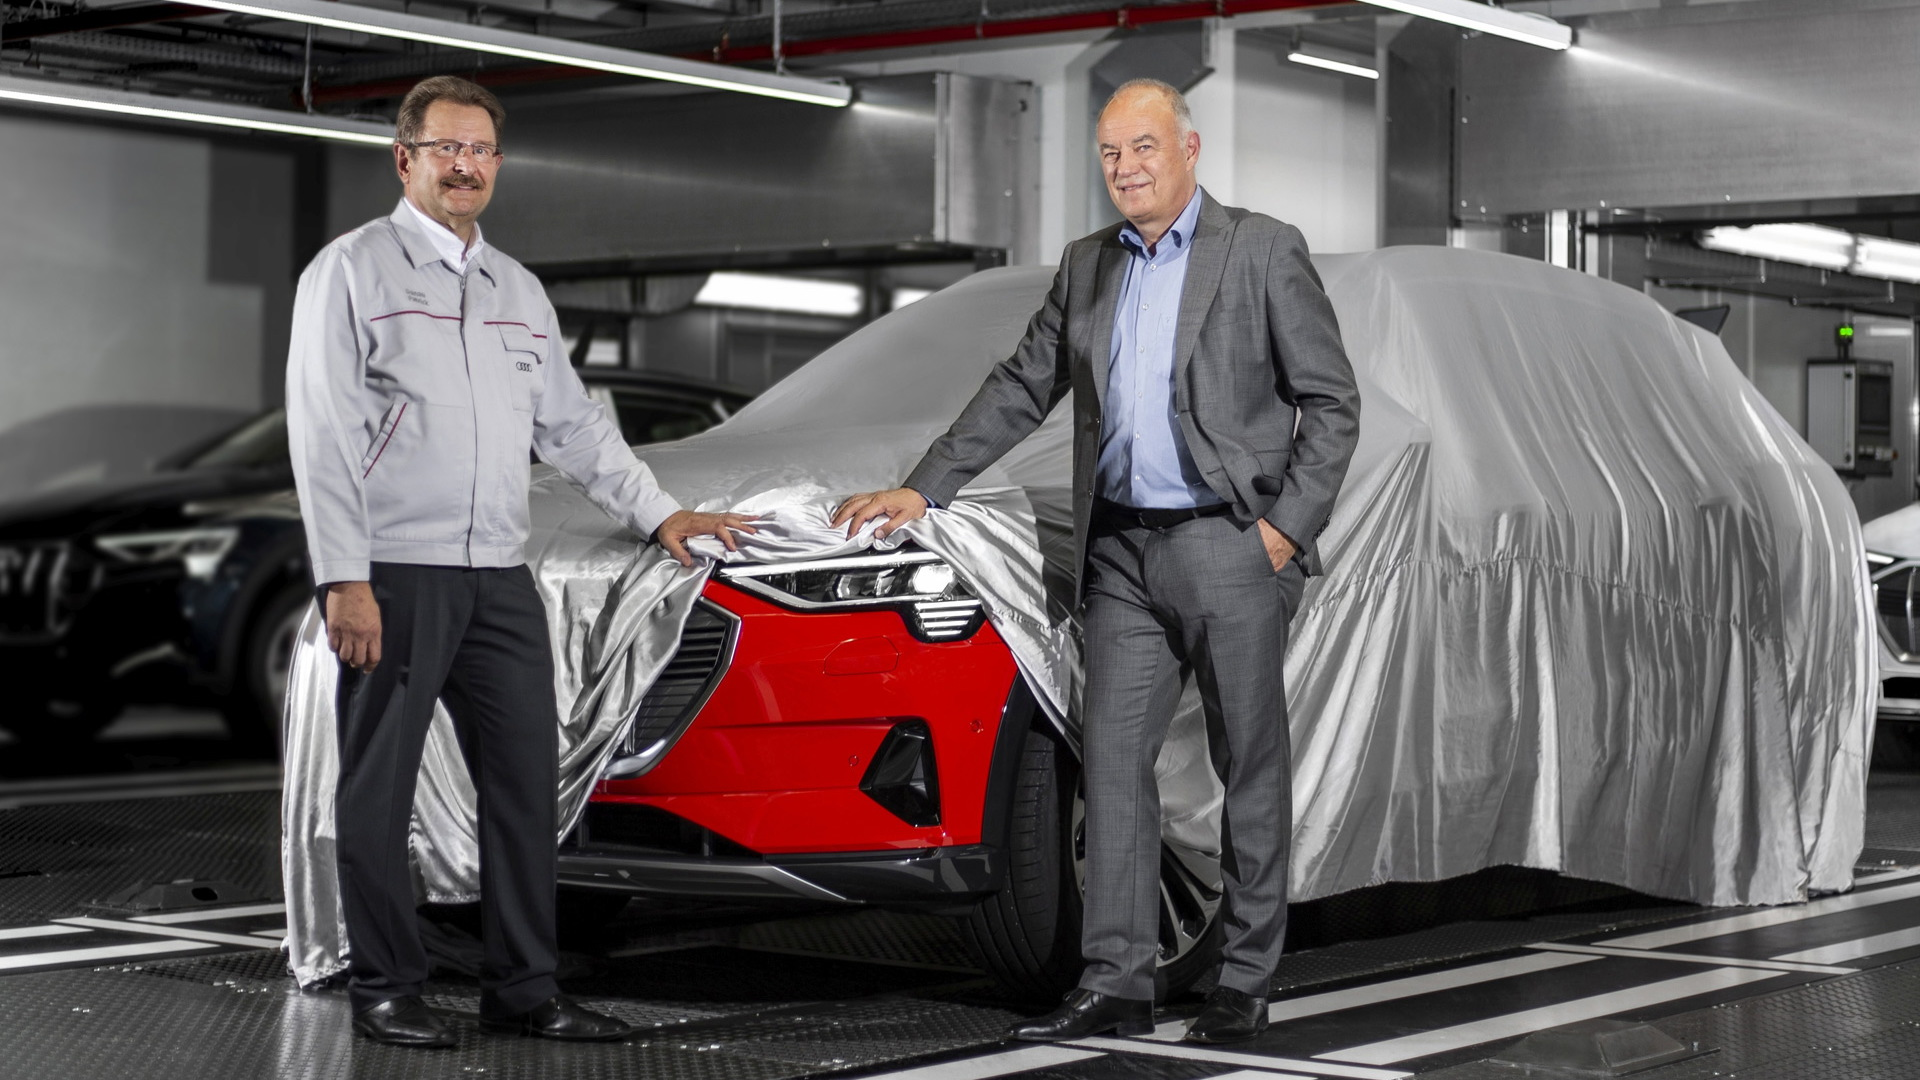 Audi management inspect first e-tron electric SUV off the line at plant in Brussels, Belgium